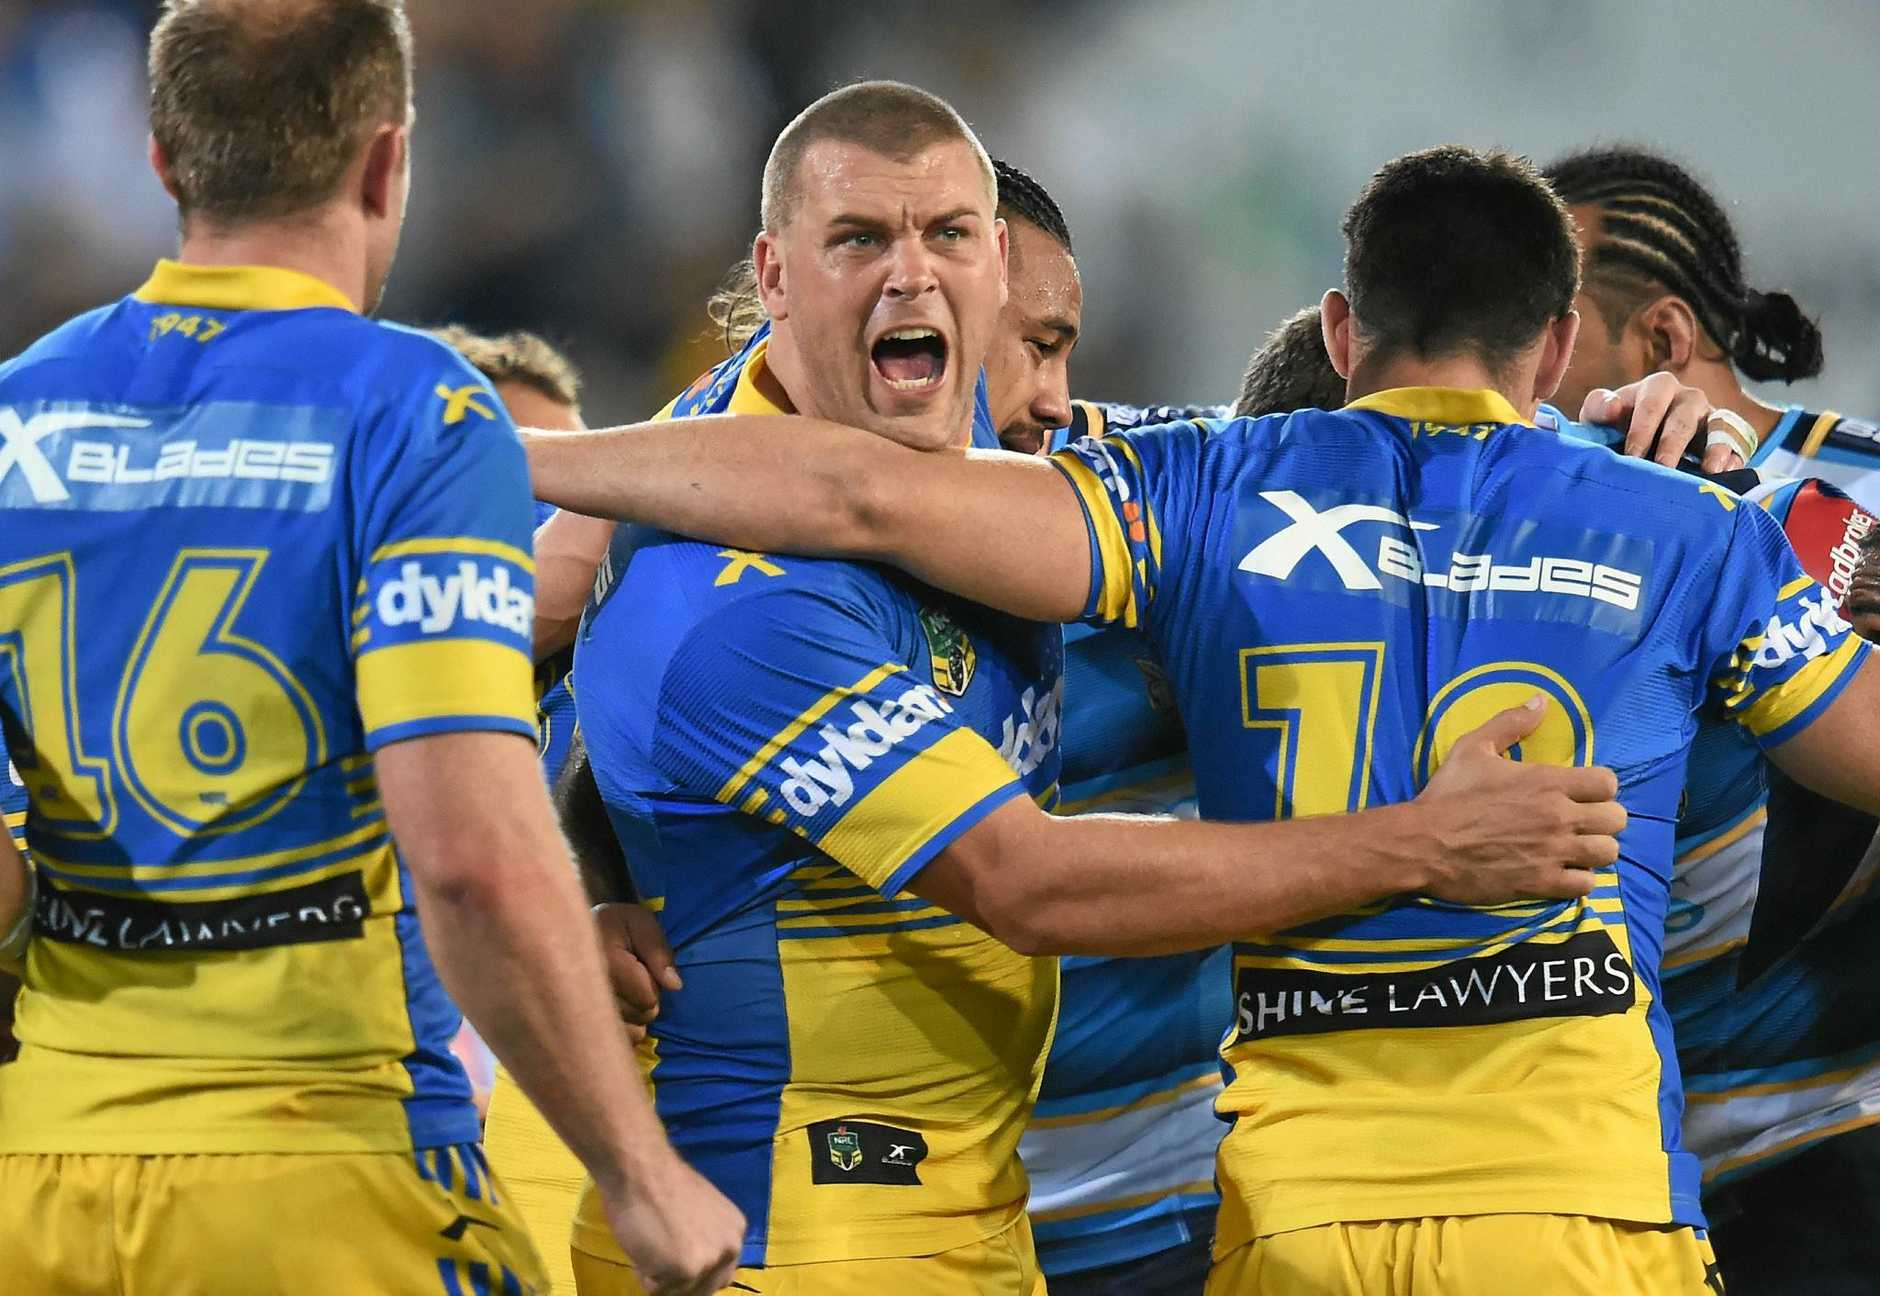 Eels player Danny Wicks reacts during the Round 20 NRL match between the Gold Coast Titans and the Parramatta Eels at CBUS Stadium on the Gold Coast, Saturday, June 23, 2016. (AAP Image/Dave Hunt) NO ARCHIVING, EDITORIAL USE ONLY